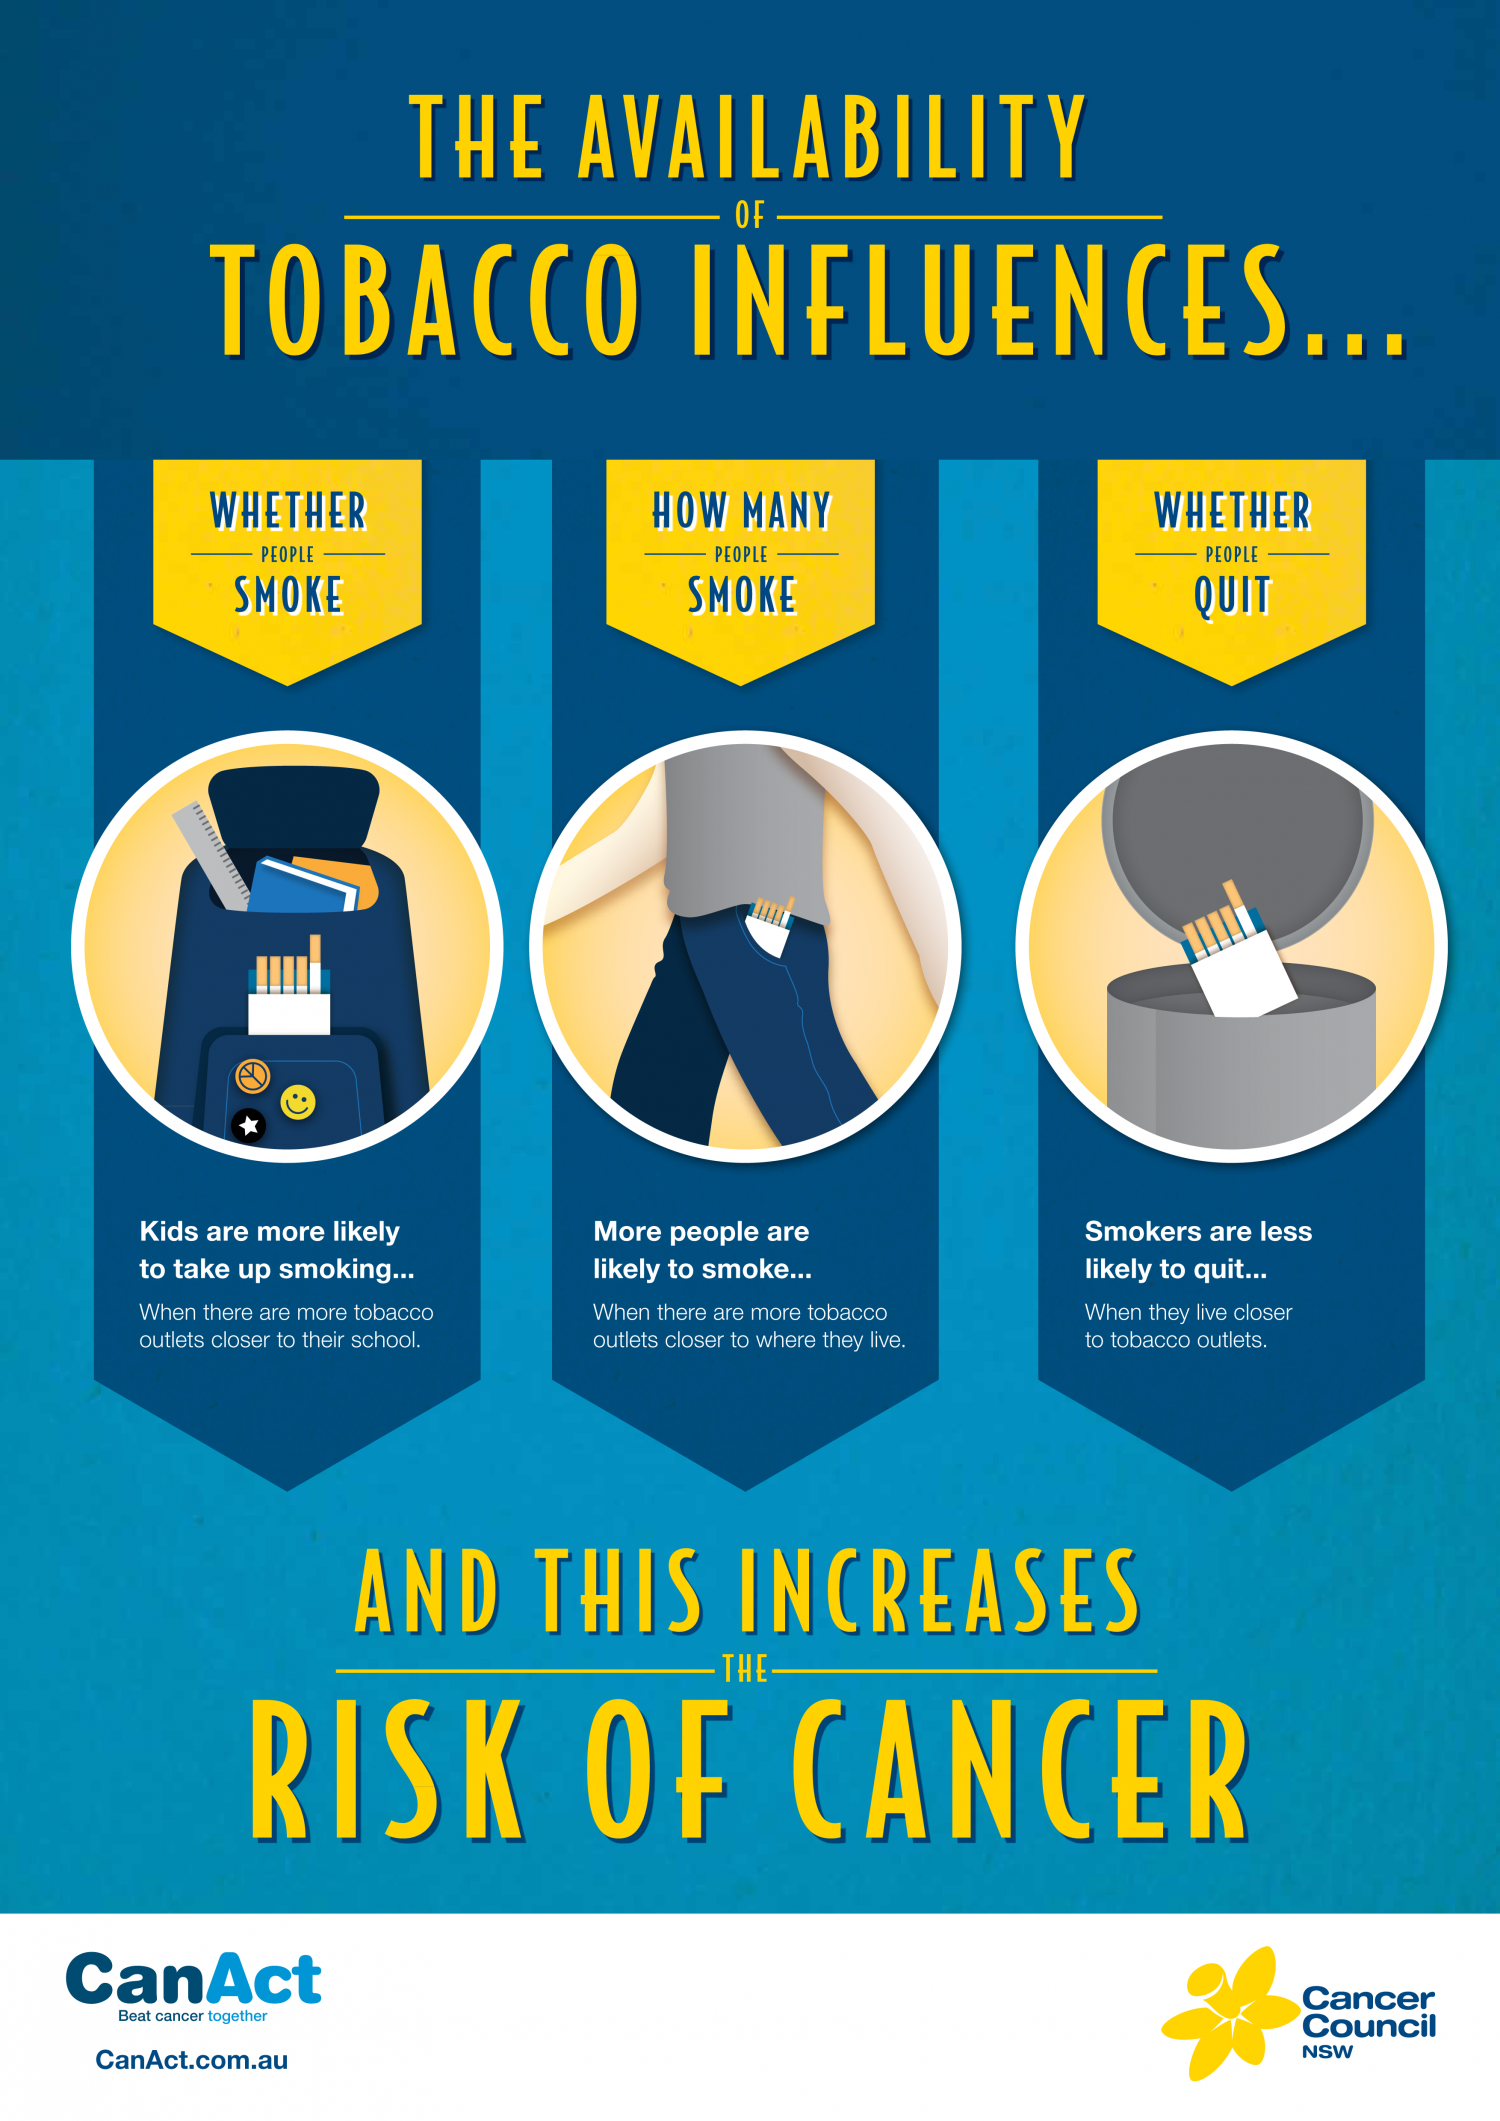 How The Availability Of Tobacco Influences The Risk Of Cancer Infographic